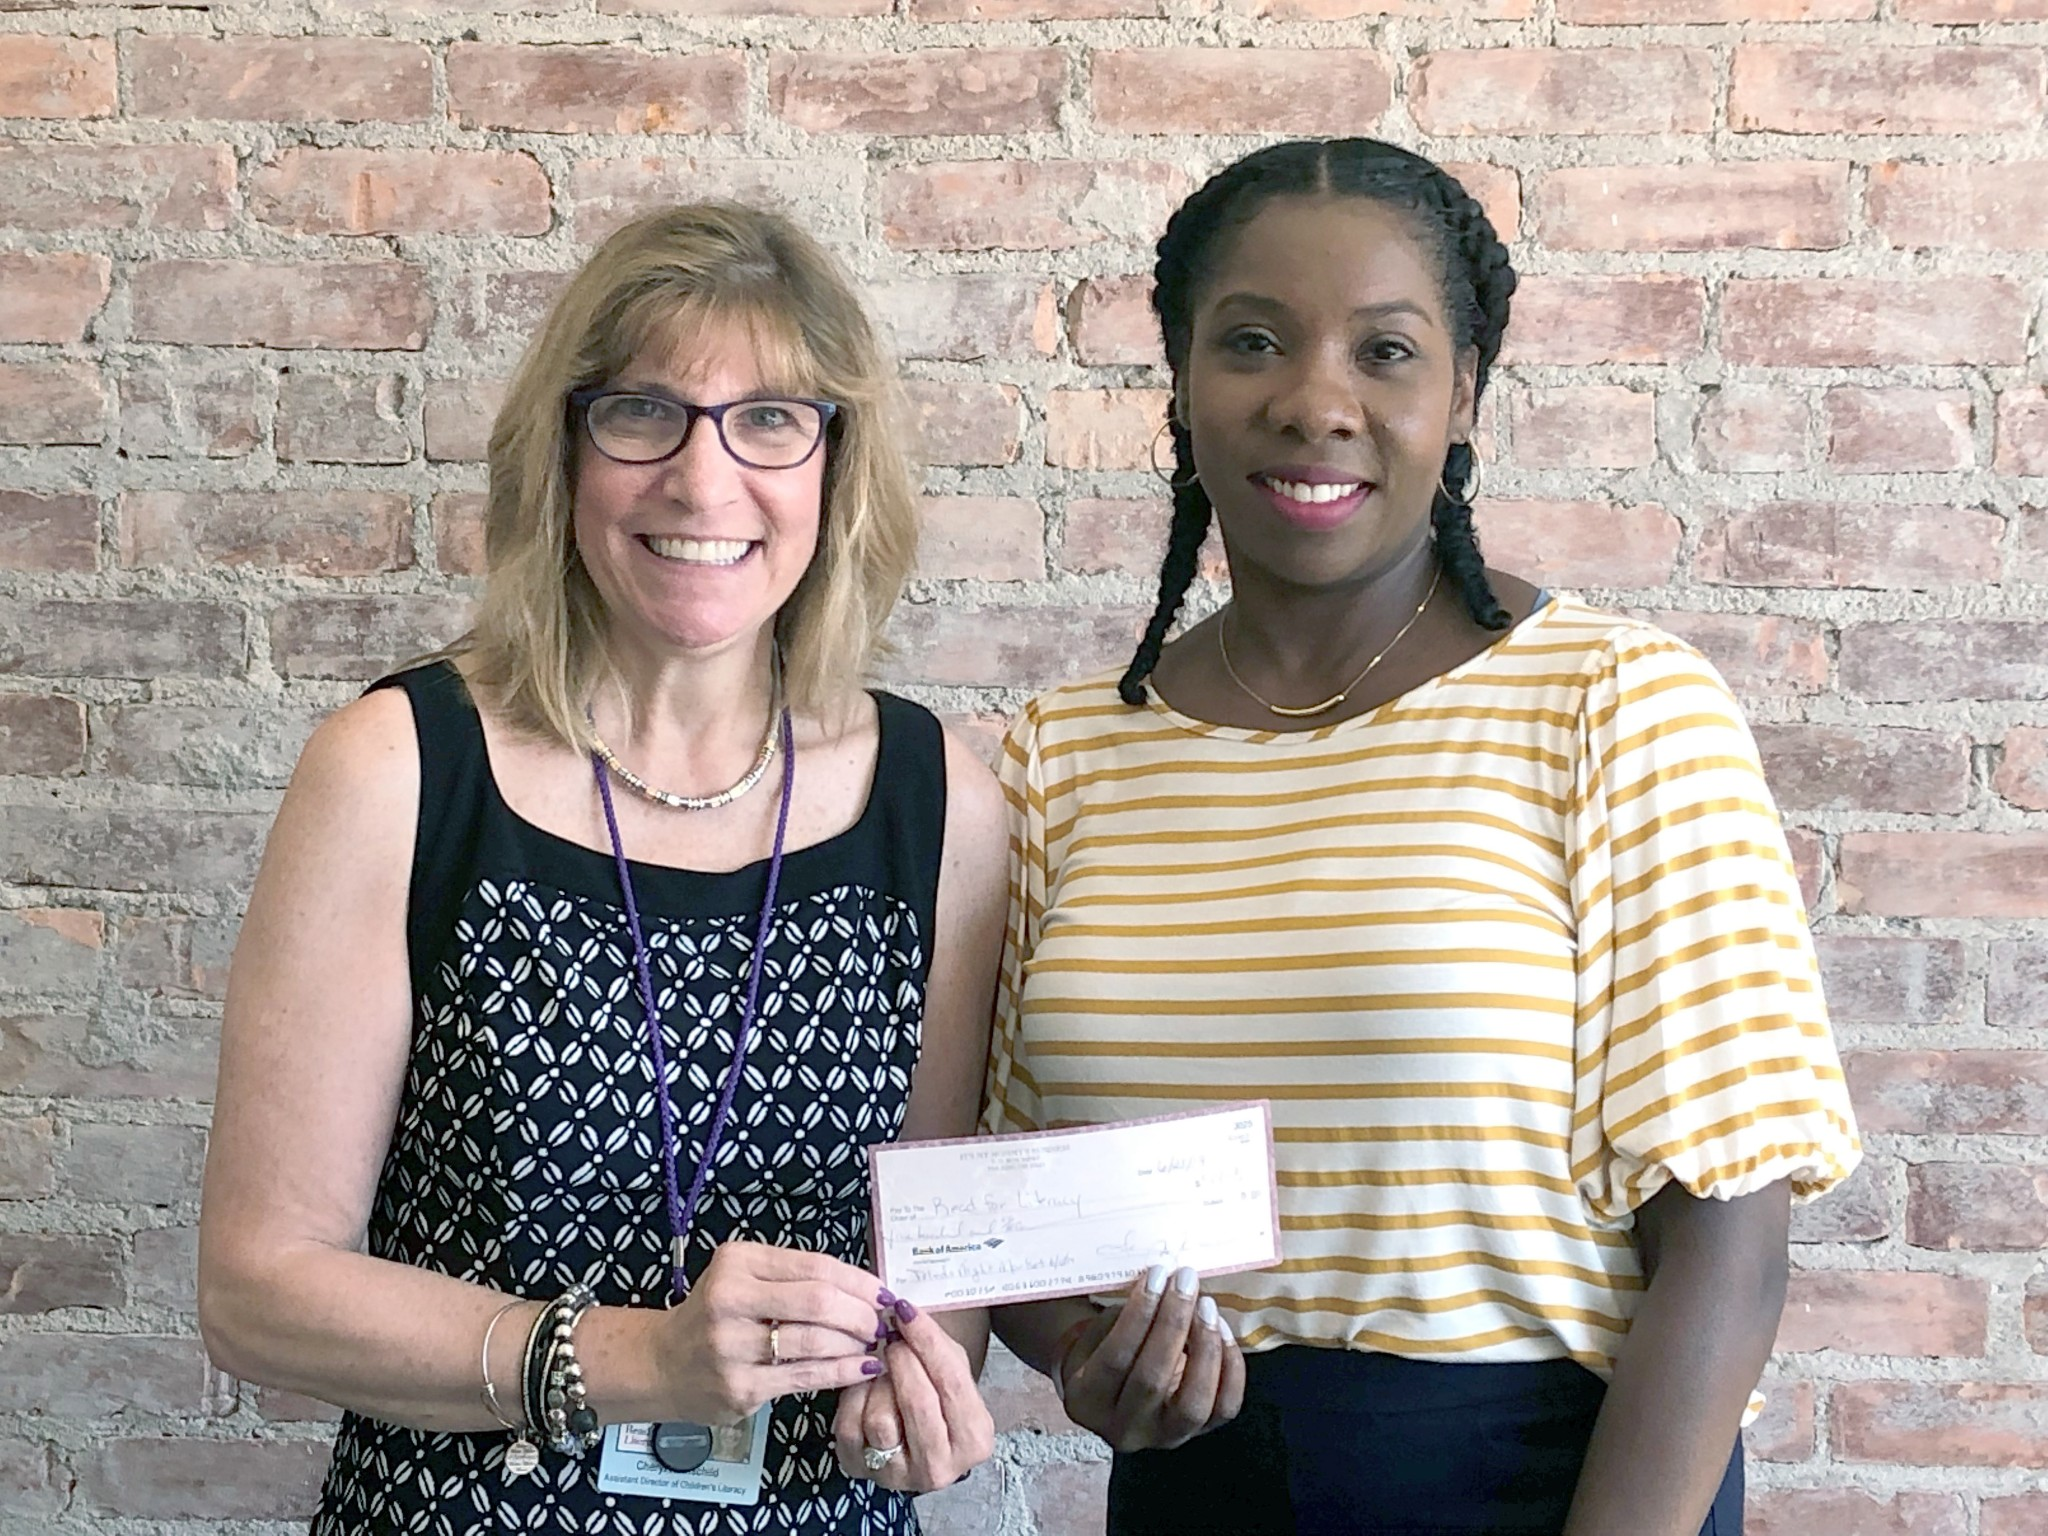 Fancy Moreland (right), creator of Toledo Night Market, presents a donation check to Cheryl Rothschild, Director of Volunteers and Library Outreach at Read for Literacy. (Submitted photo)